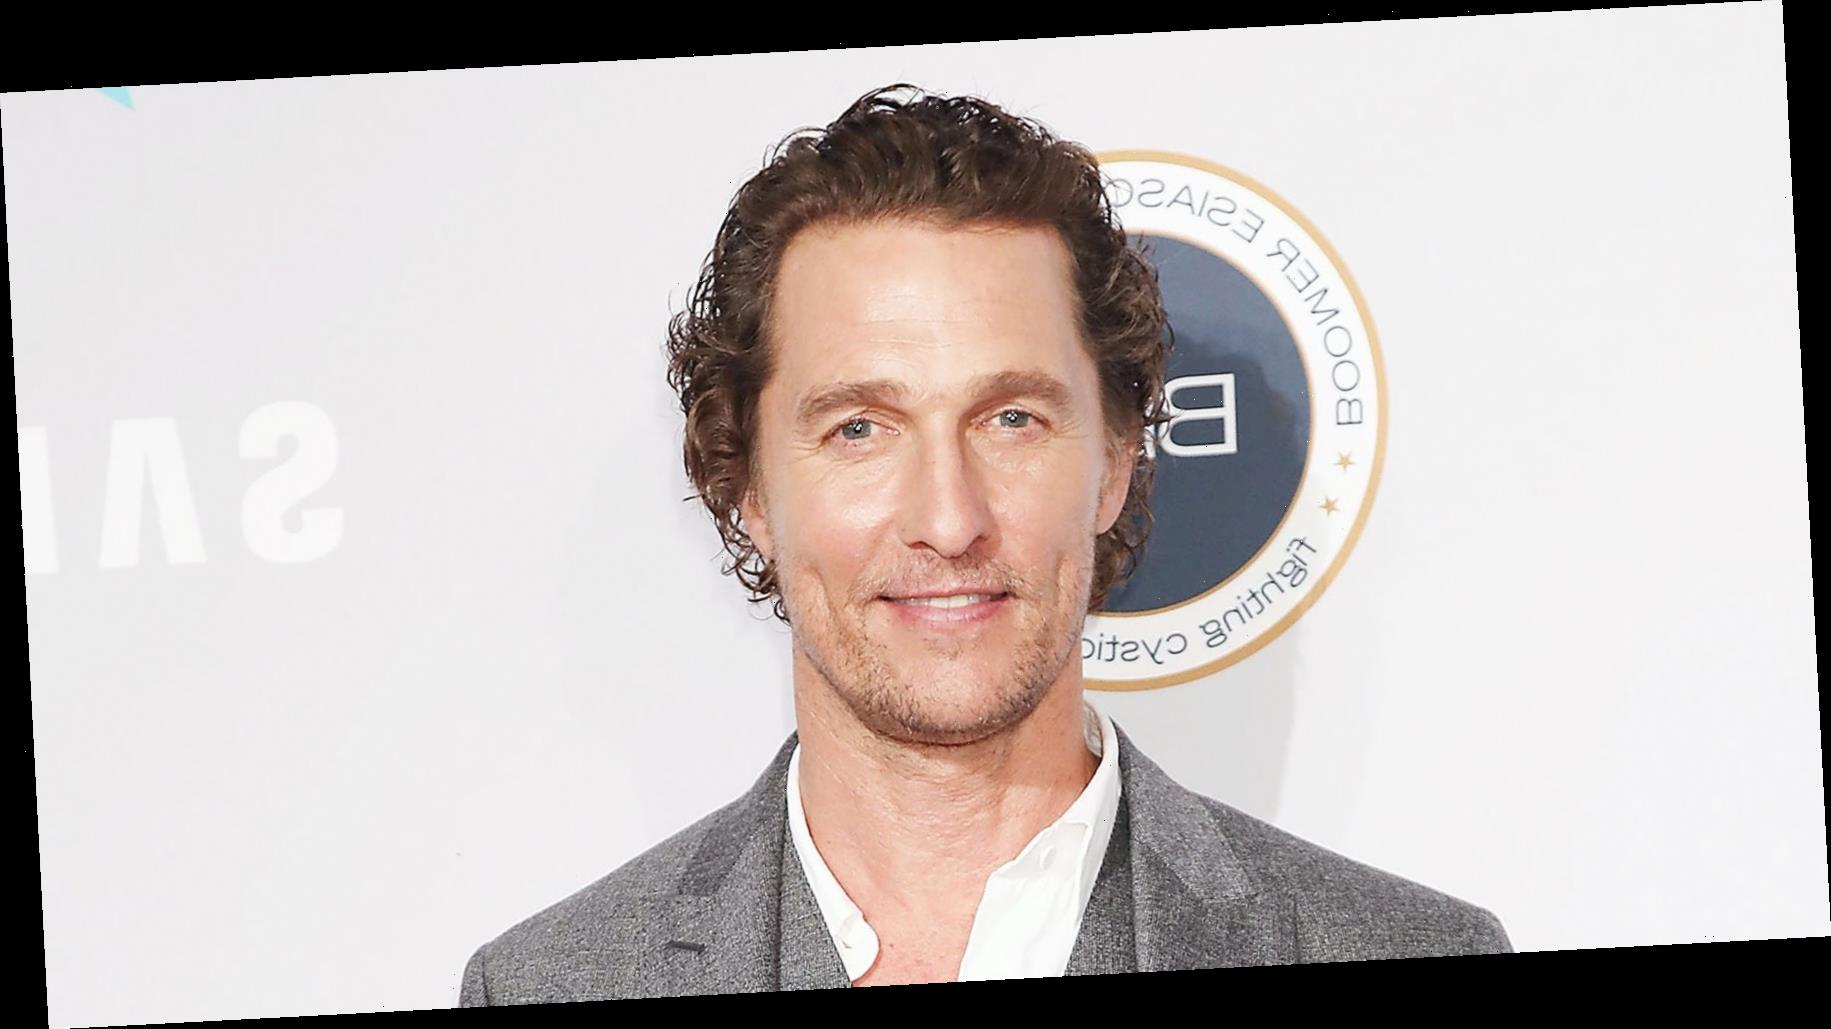 10 Wild Things We Learned About Matthew McConaughey in His New Book